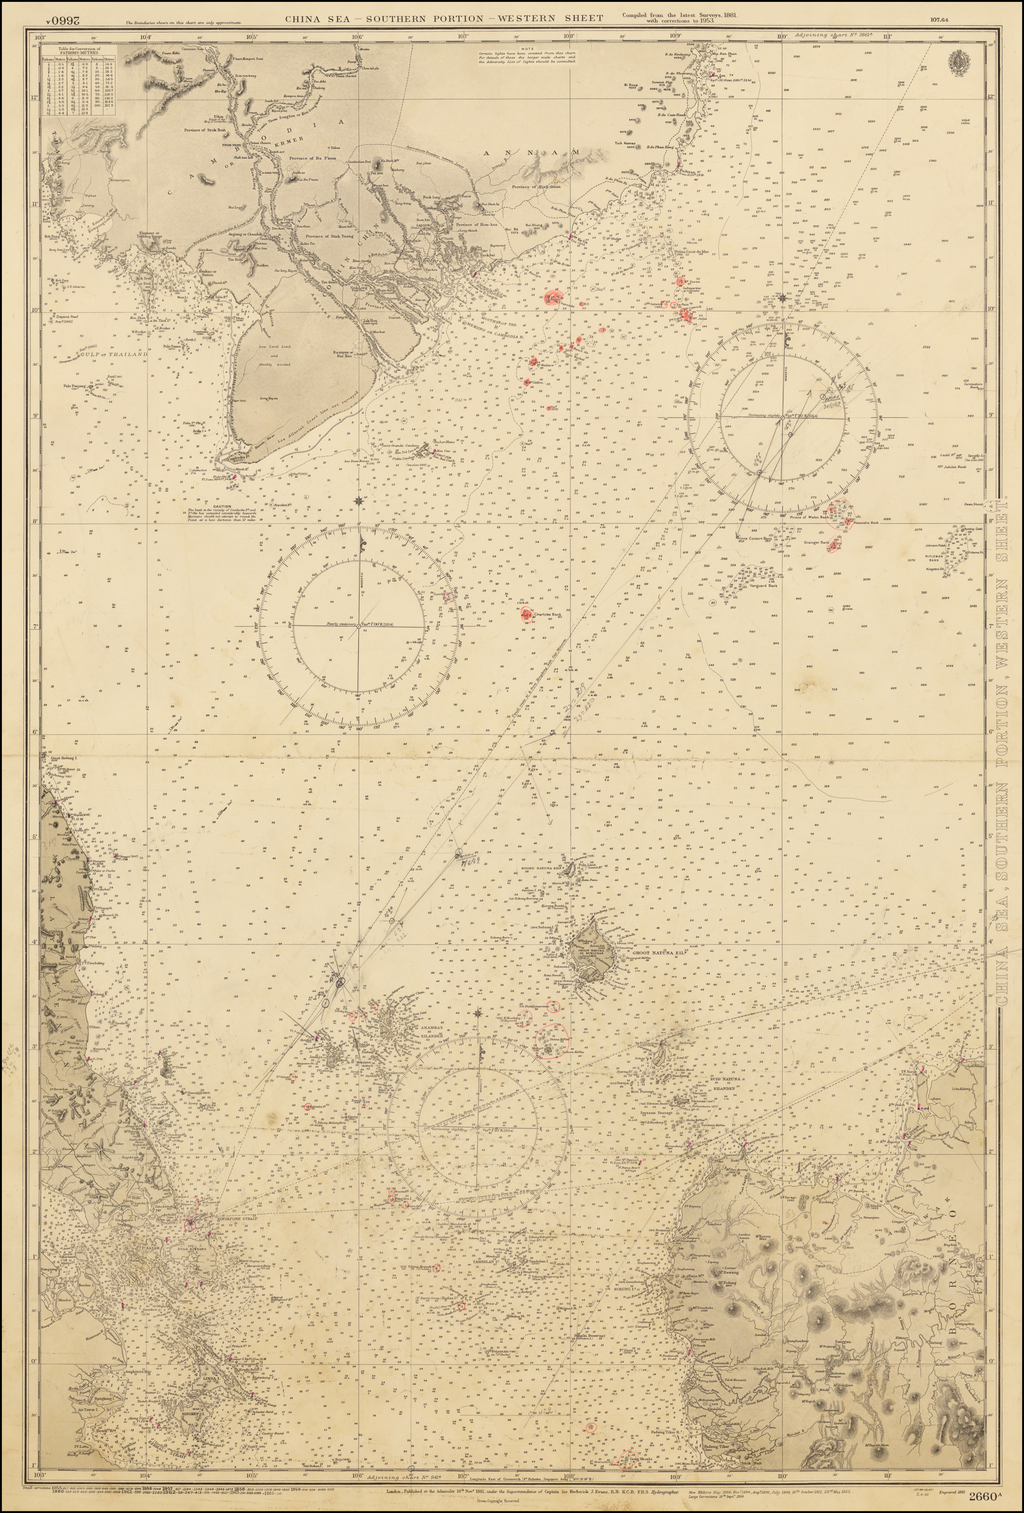 [Singapore, Malaysia, Cambodia, Vietnam]  China Sea - Southern Portion - Western Sheet.  Compiled from the latest Surveys, 1881.  with corrections to 1953. By British Admiralty